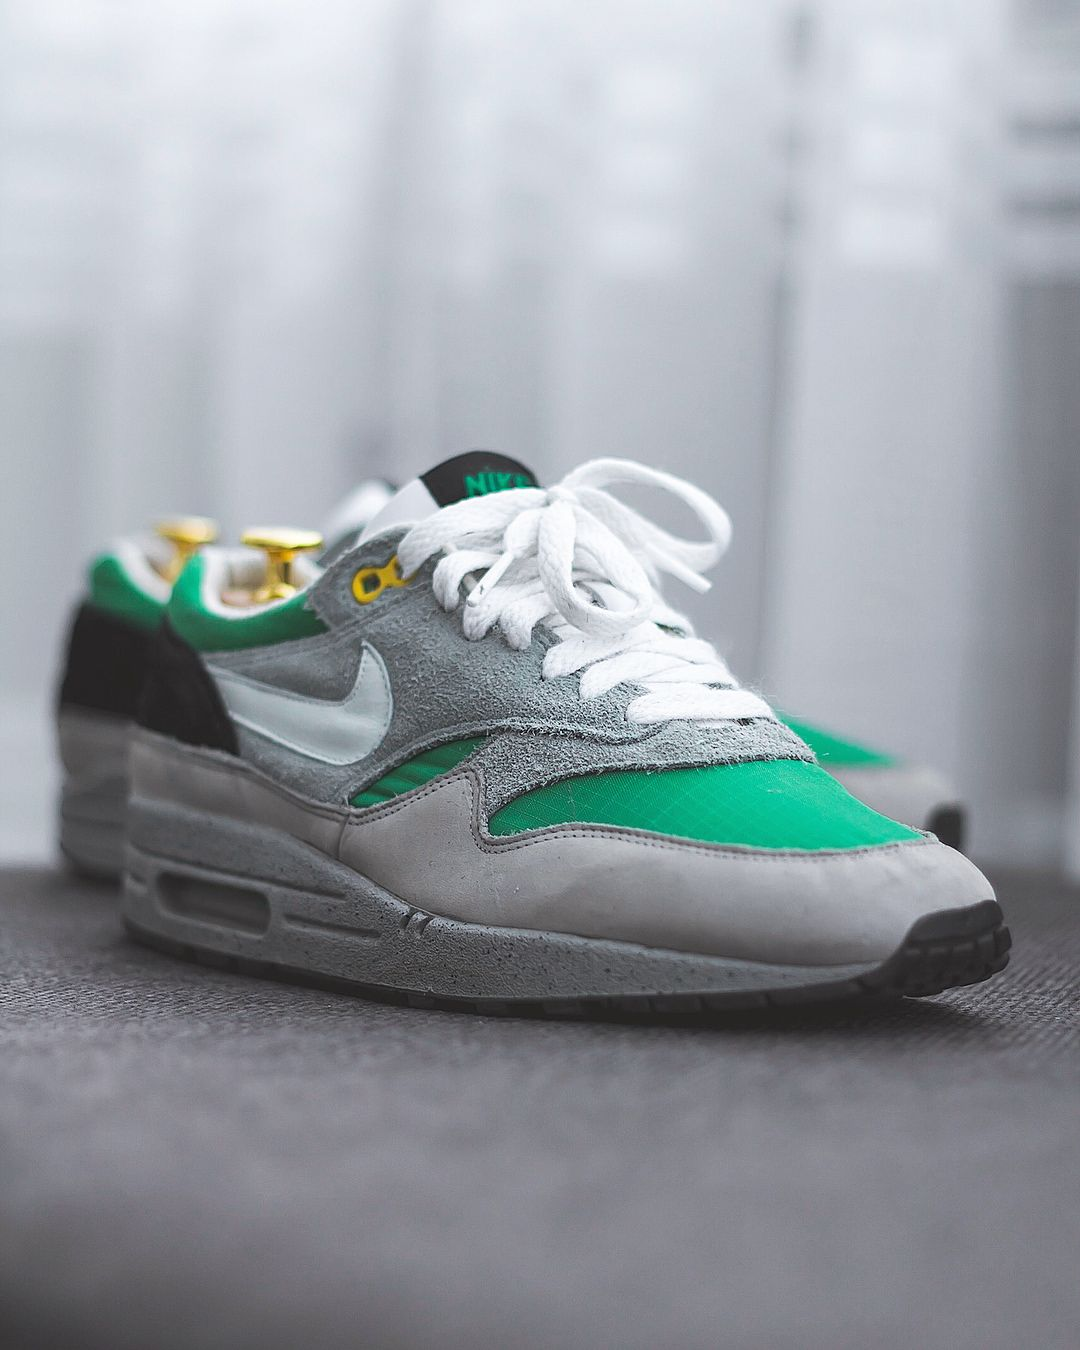 2005 Nike Air Max Sz 12 White Leather,Green,Black,Yellow, Very Good Condition